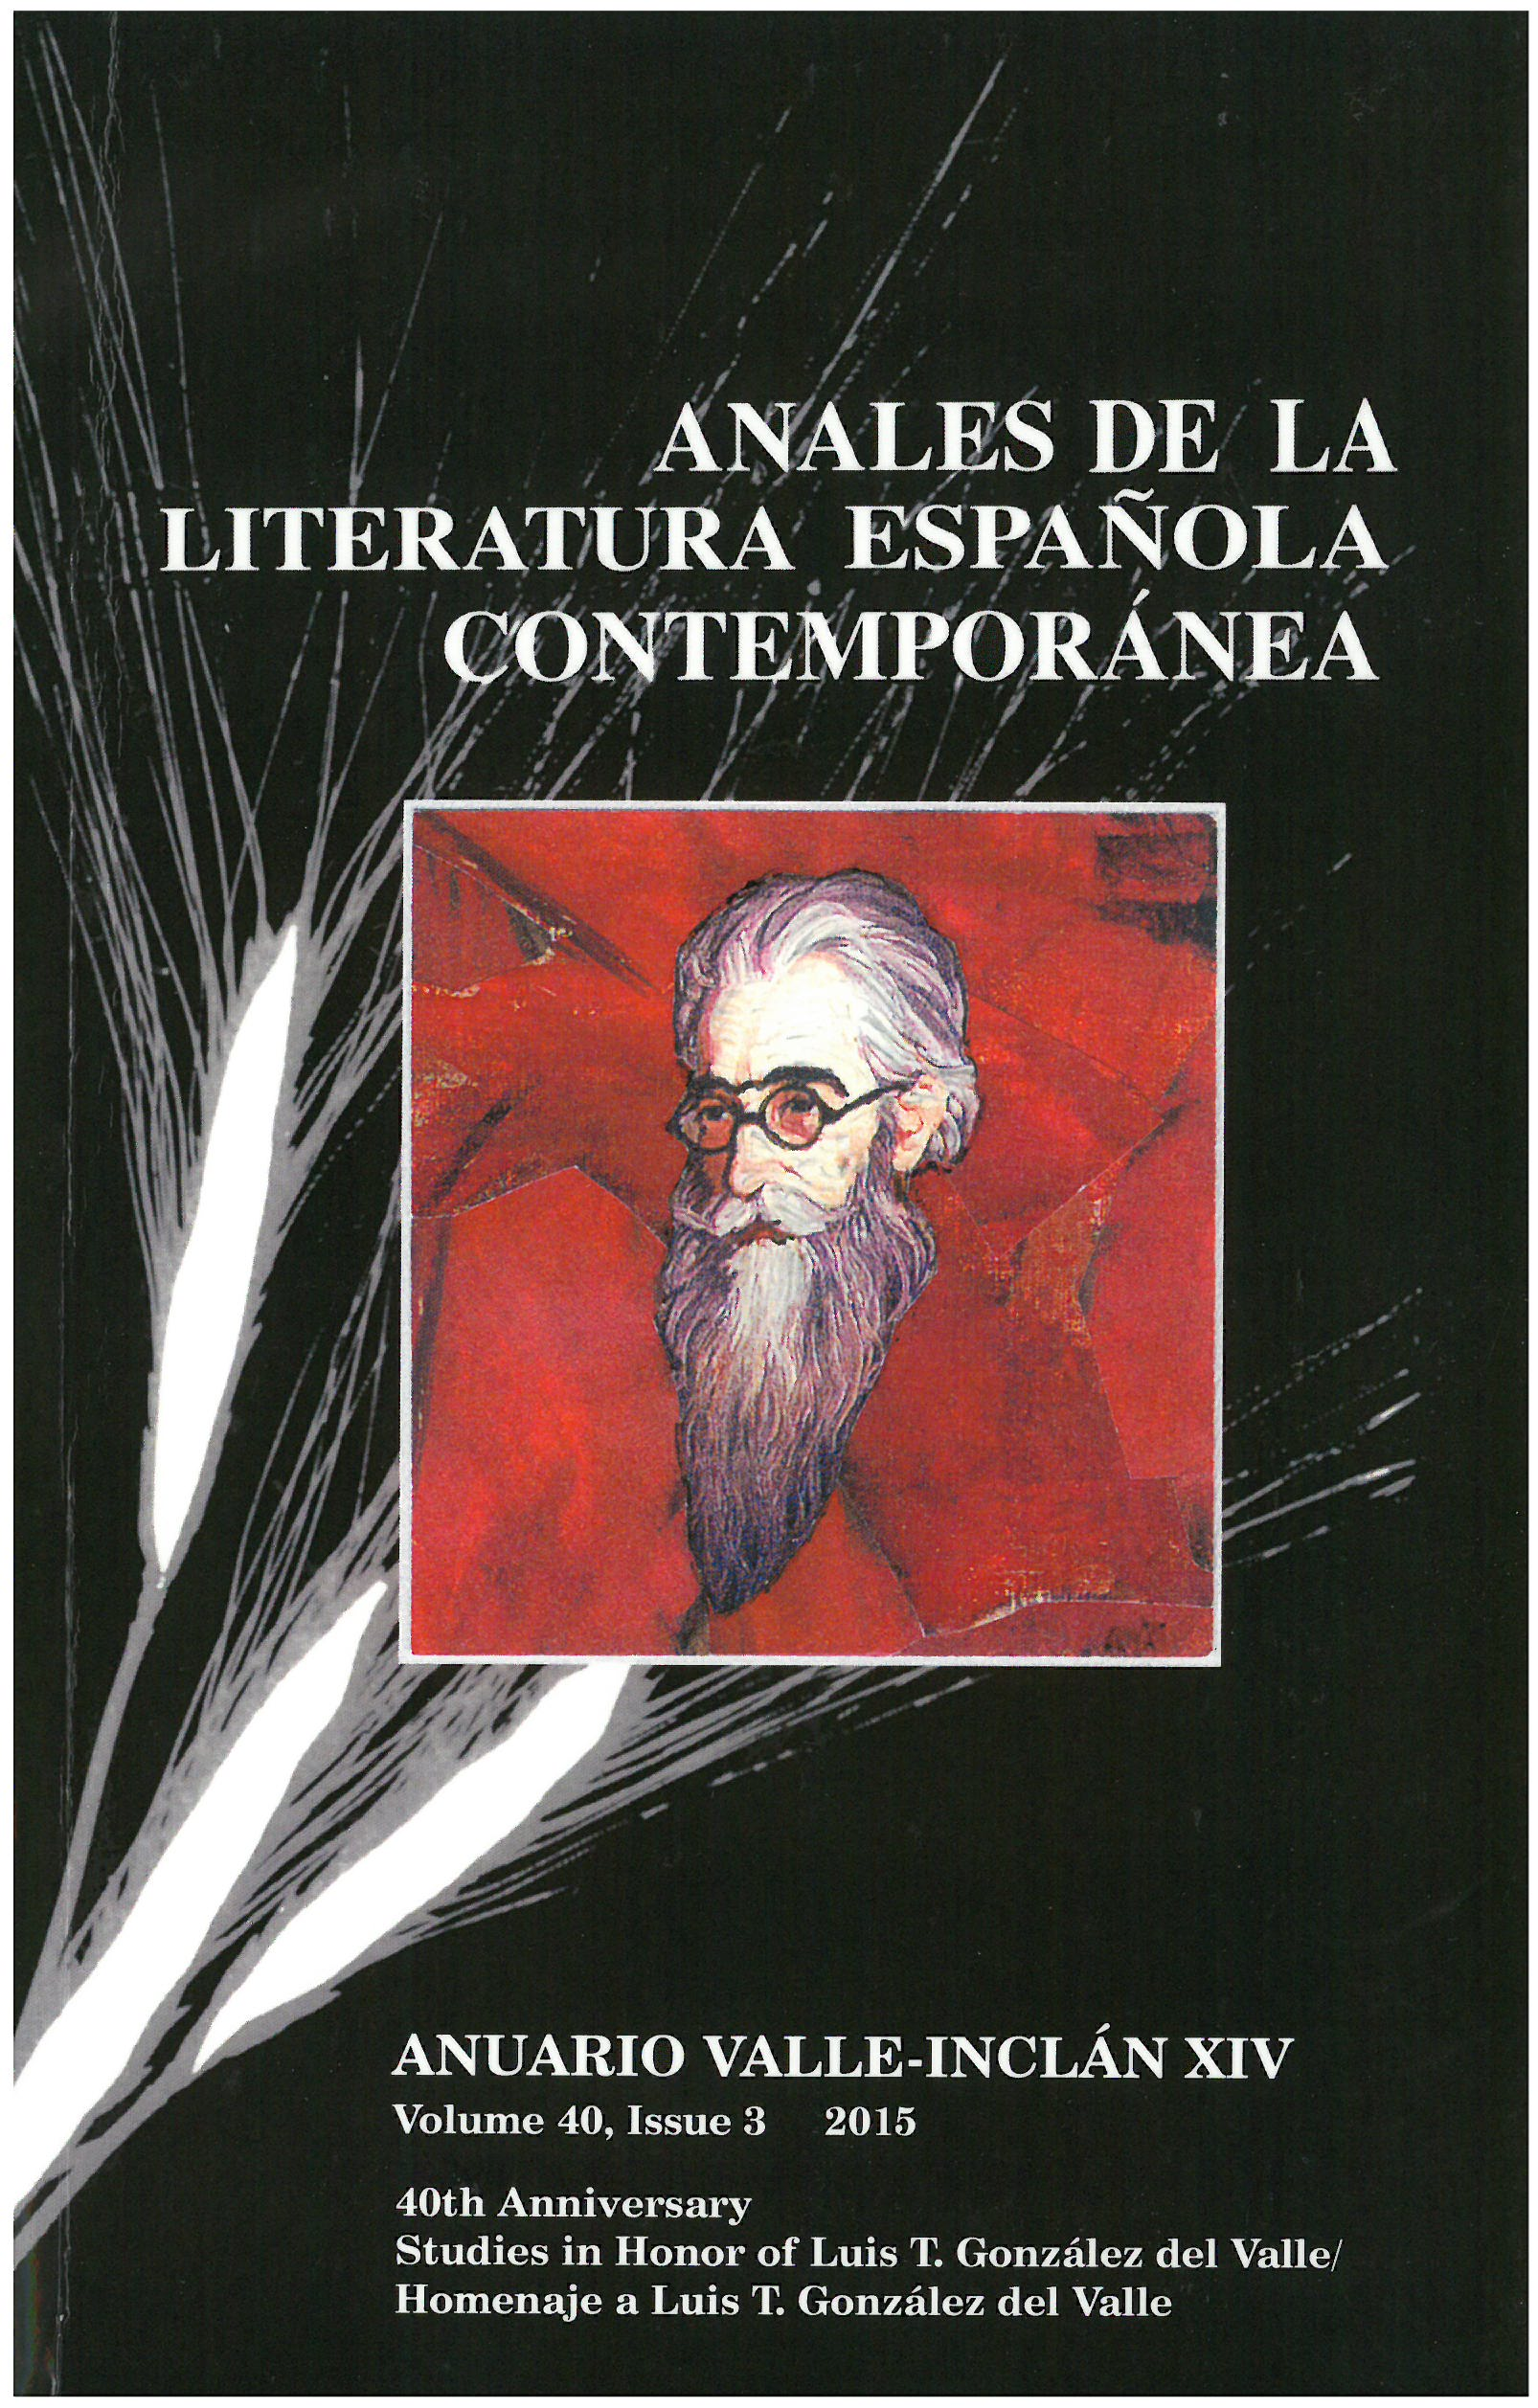 Journal Cover - Title in white lettering above a portrait of an elderly bearded man in a red box against a dark background with white shapes like stalks of wheat.